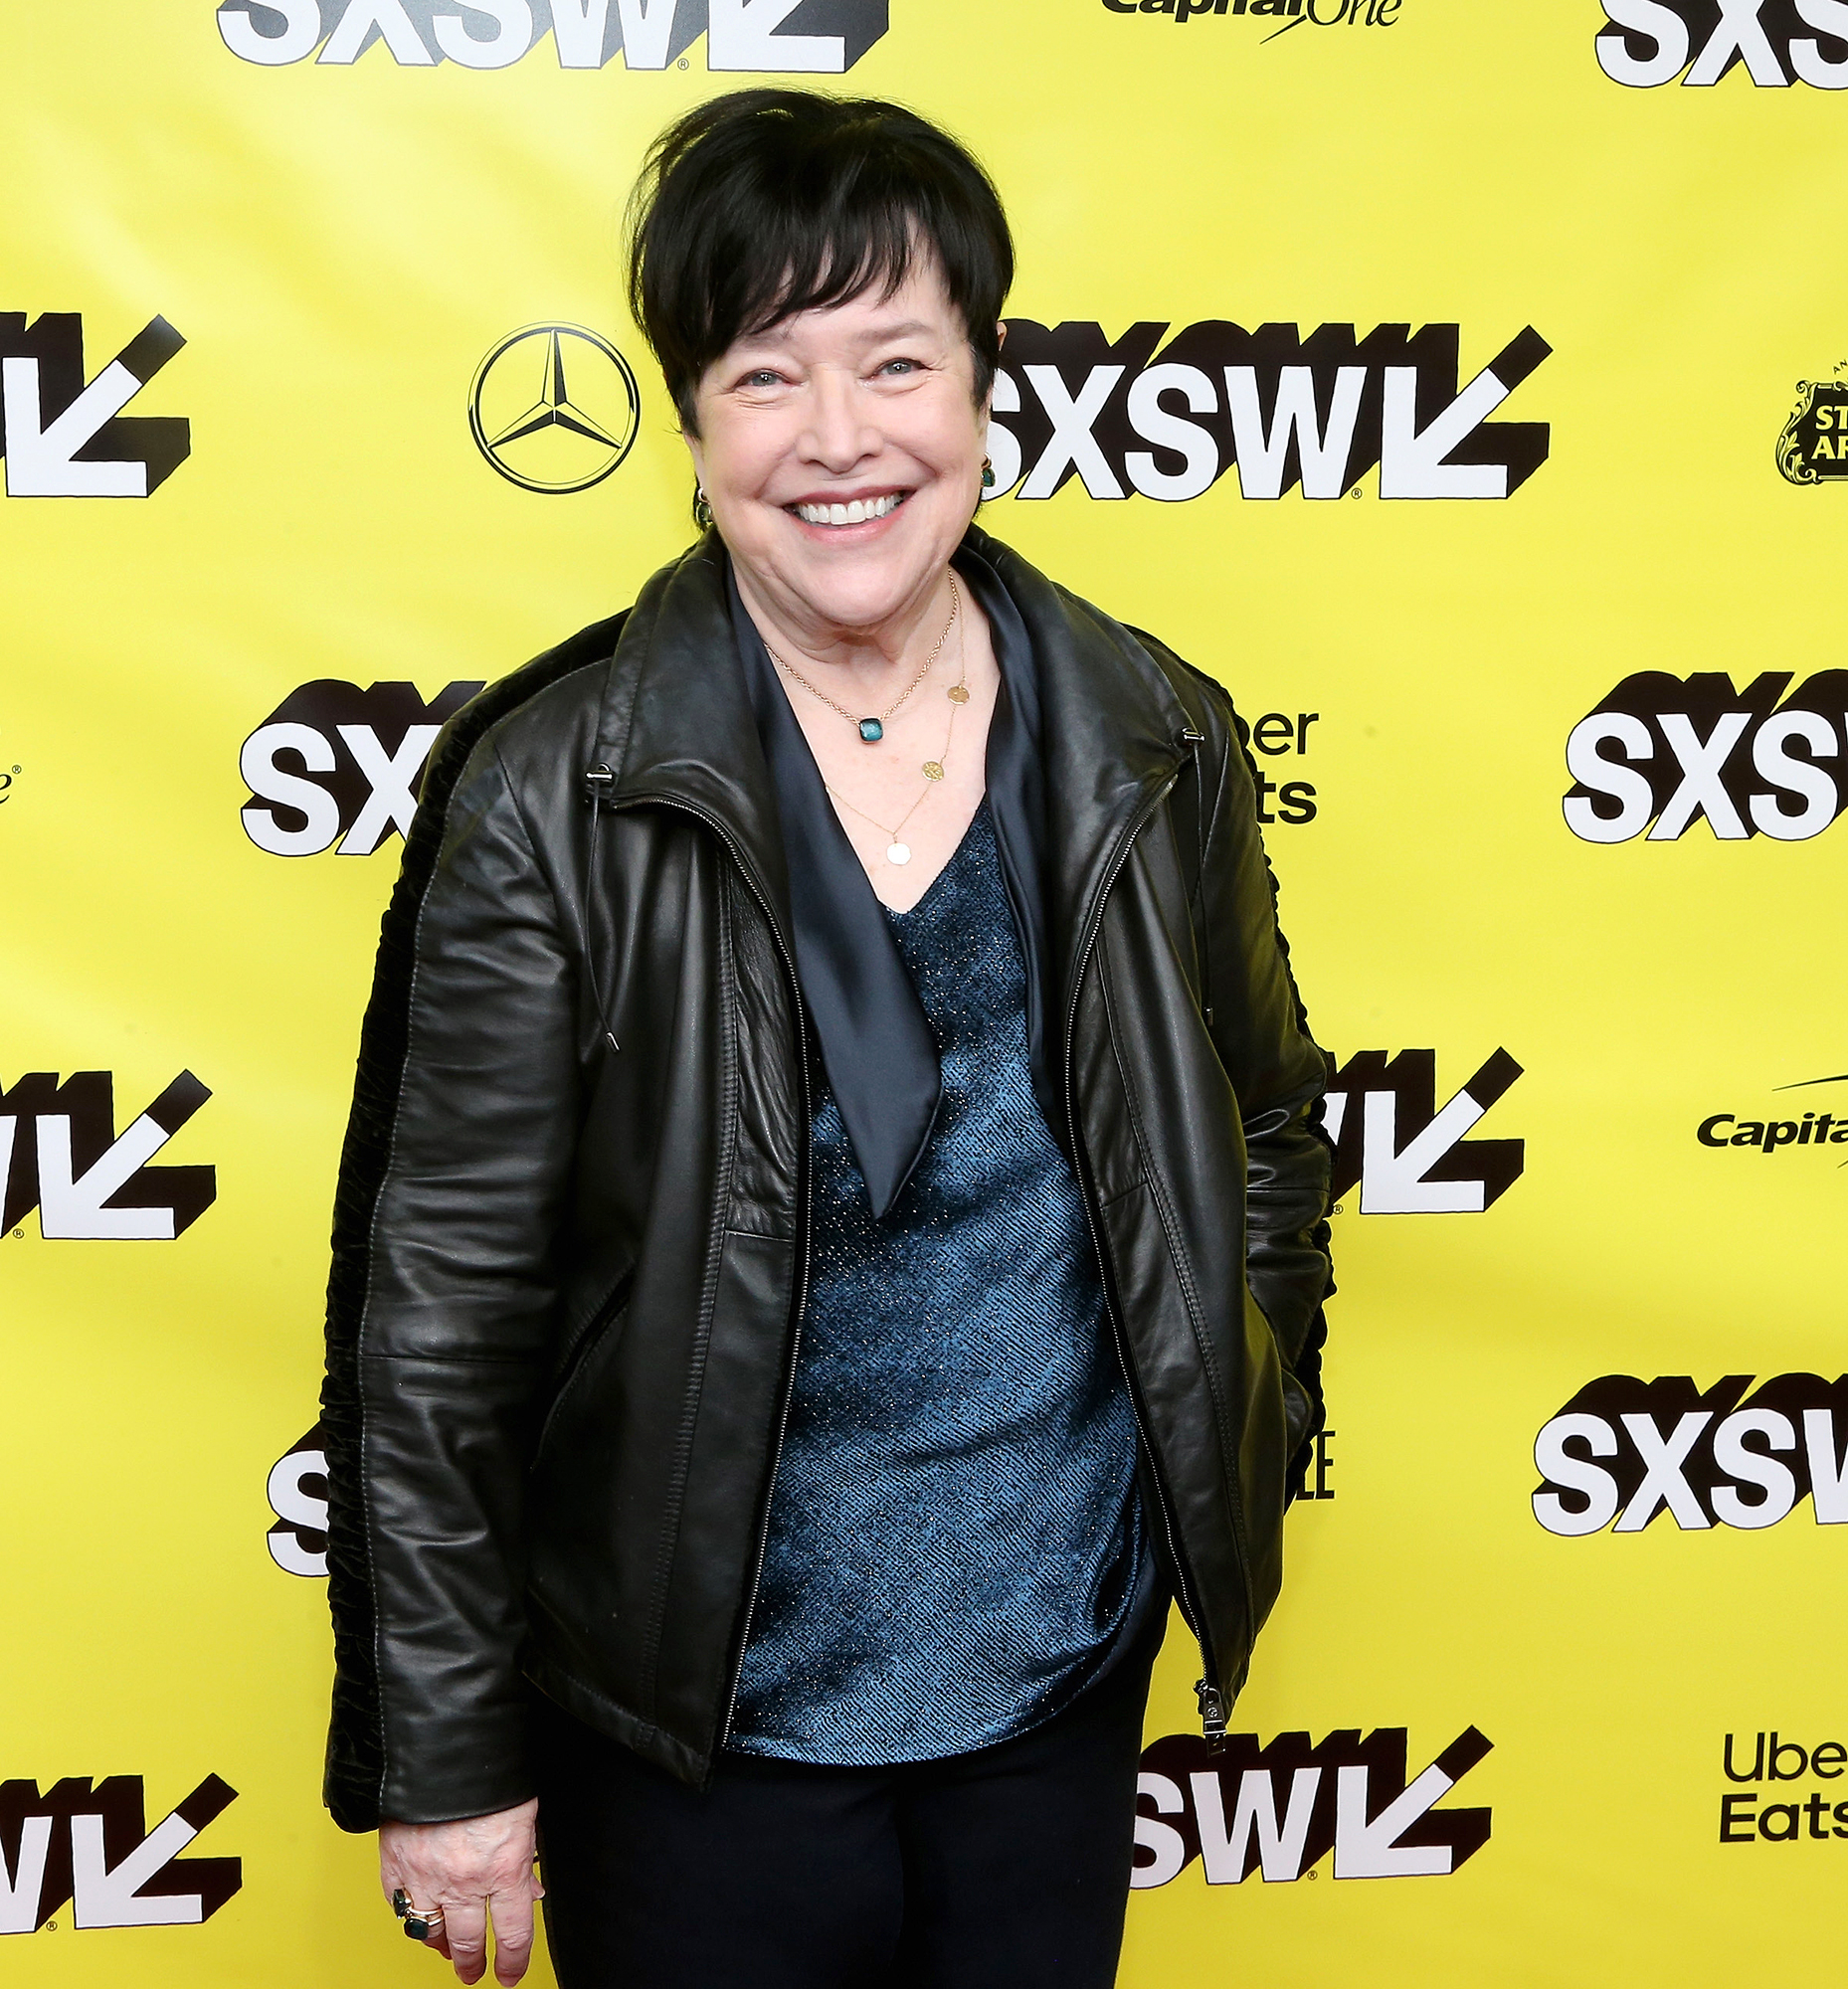 Kathy Bates Is Loving Life 60 Lbs Lighter - Kathy Bates attends the premiere of 'The Highwaymen' at the Paramount Theatre during the 2019 SXSW Conference And Festival on March 10, 2019 in Austin, Texas.